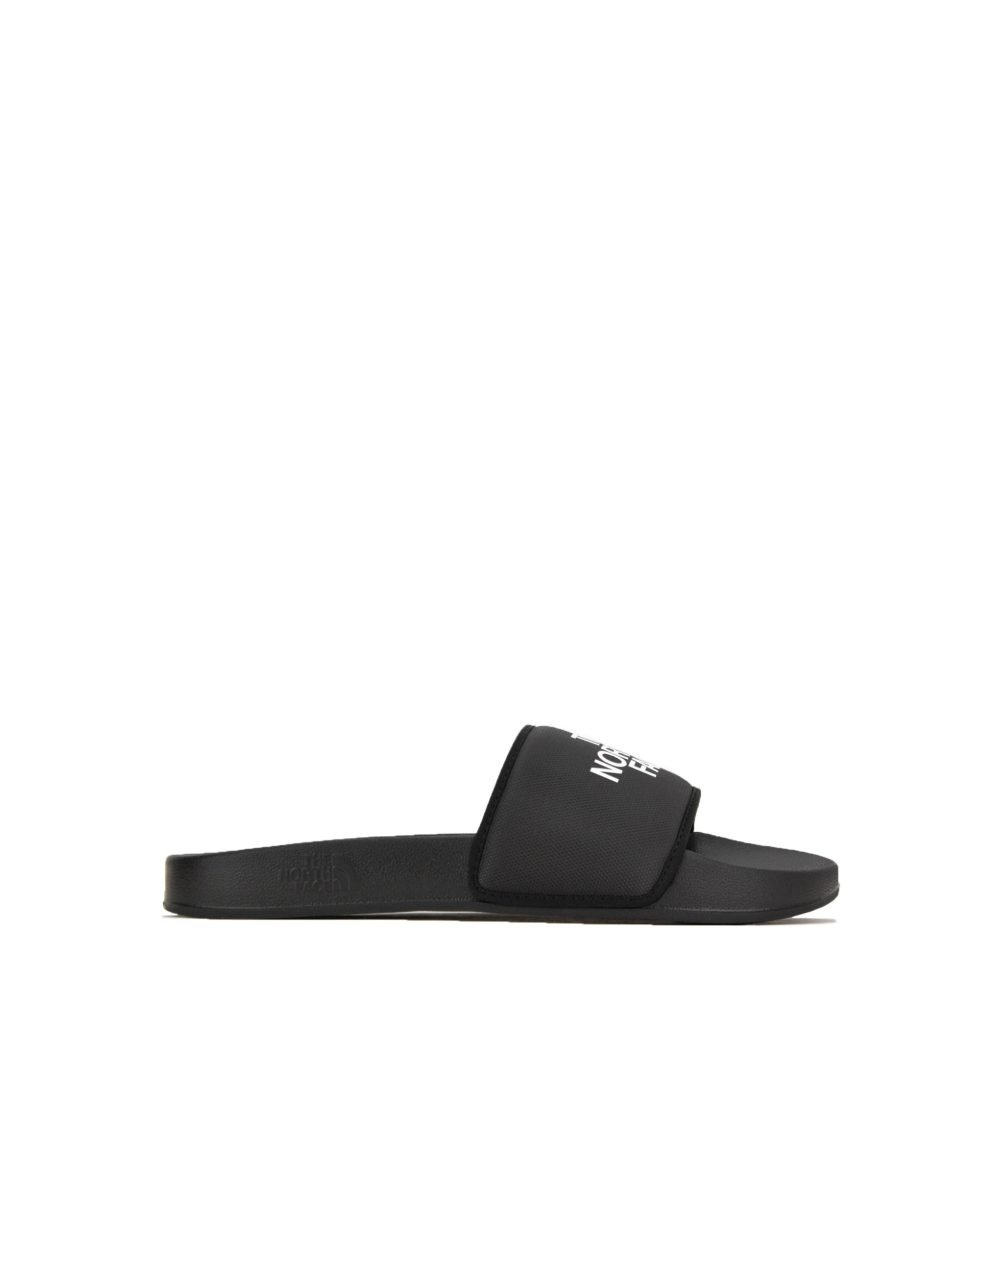 The North Face Base Camp Slide III (NF0A4T2RKY41) Black/White